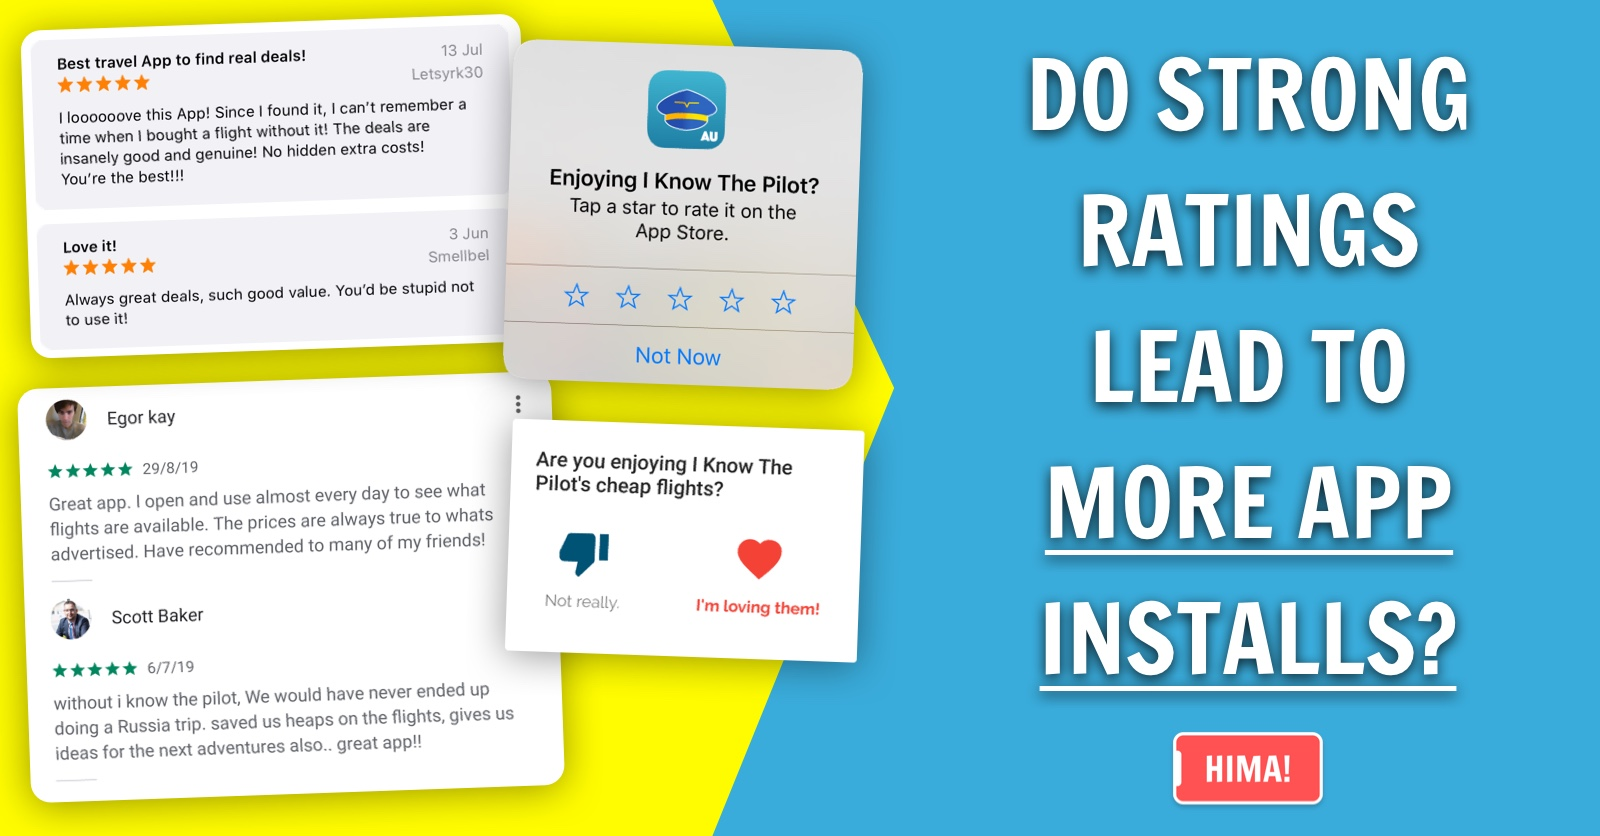 Do Strong Ratings Lead To More App Installs